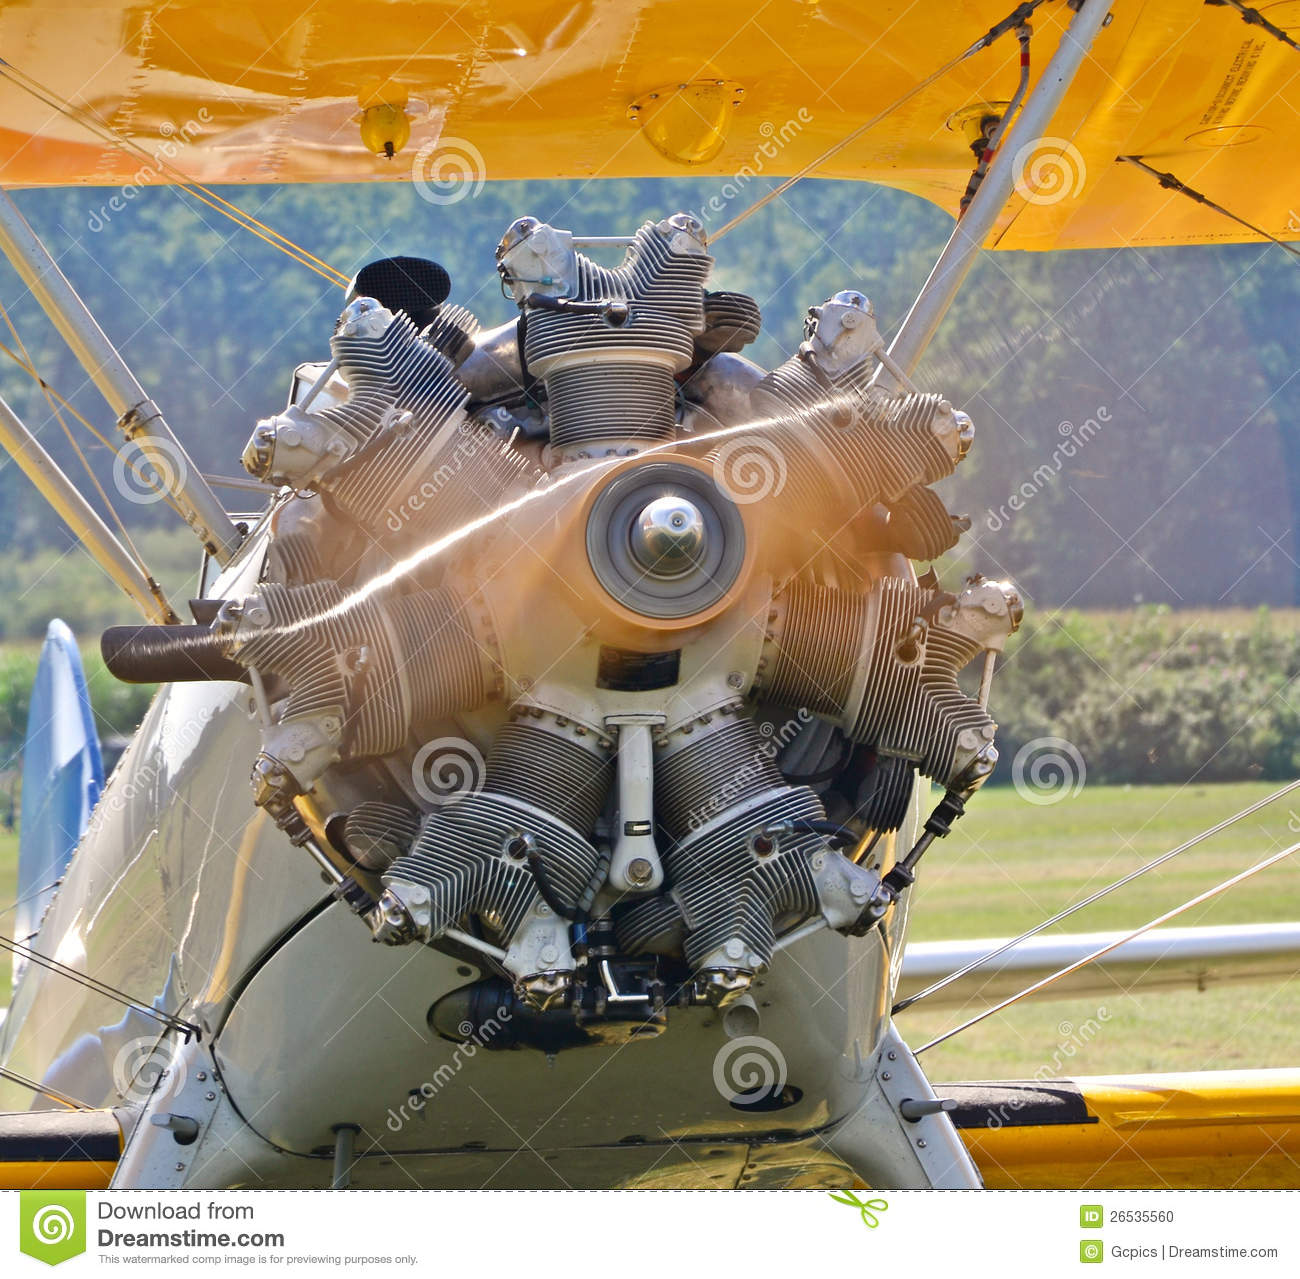 Spinning Aircraft Propeller Stock Photo - Image: 26535560